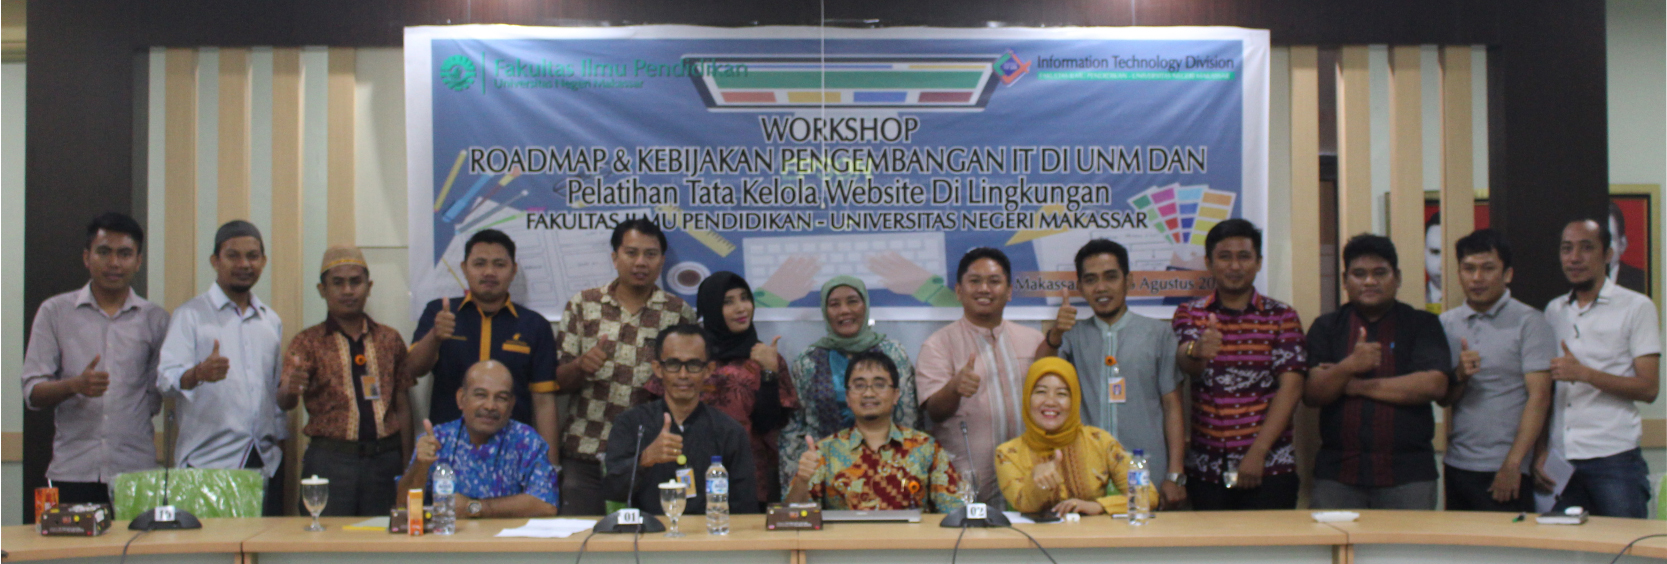 Workshop Roadmap IT